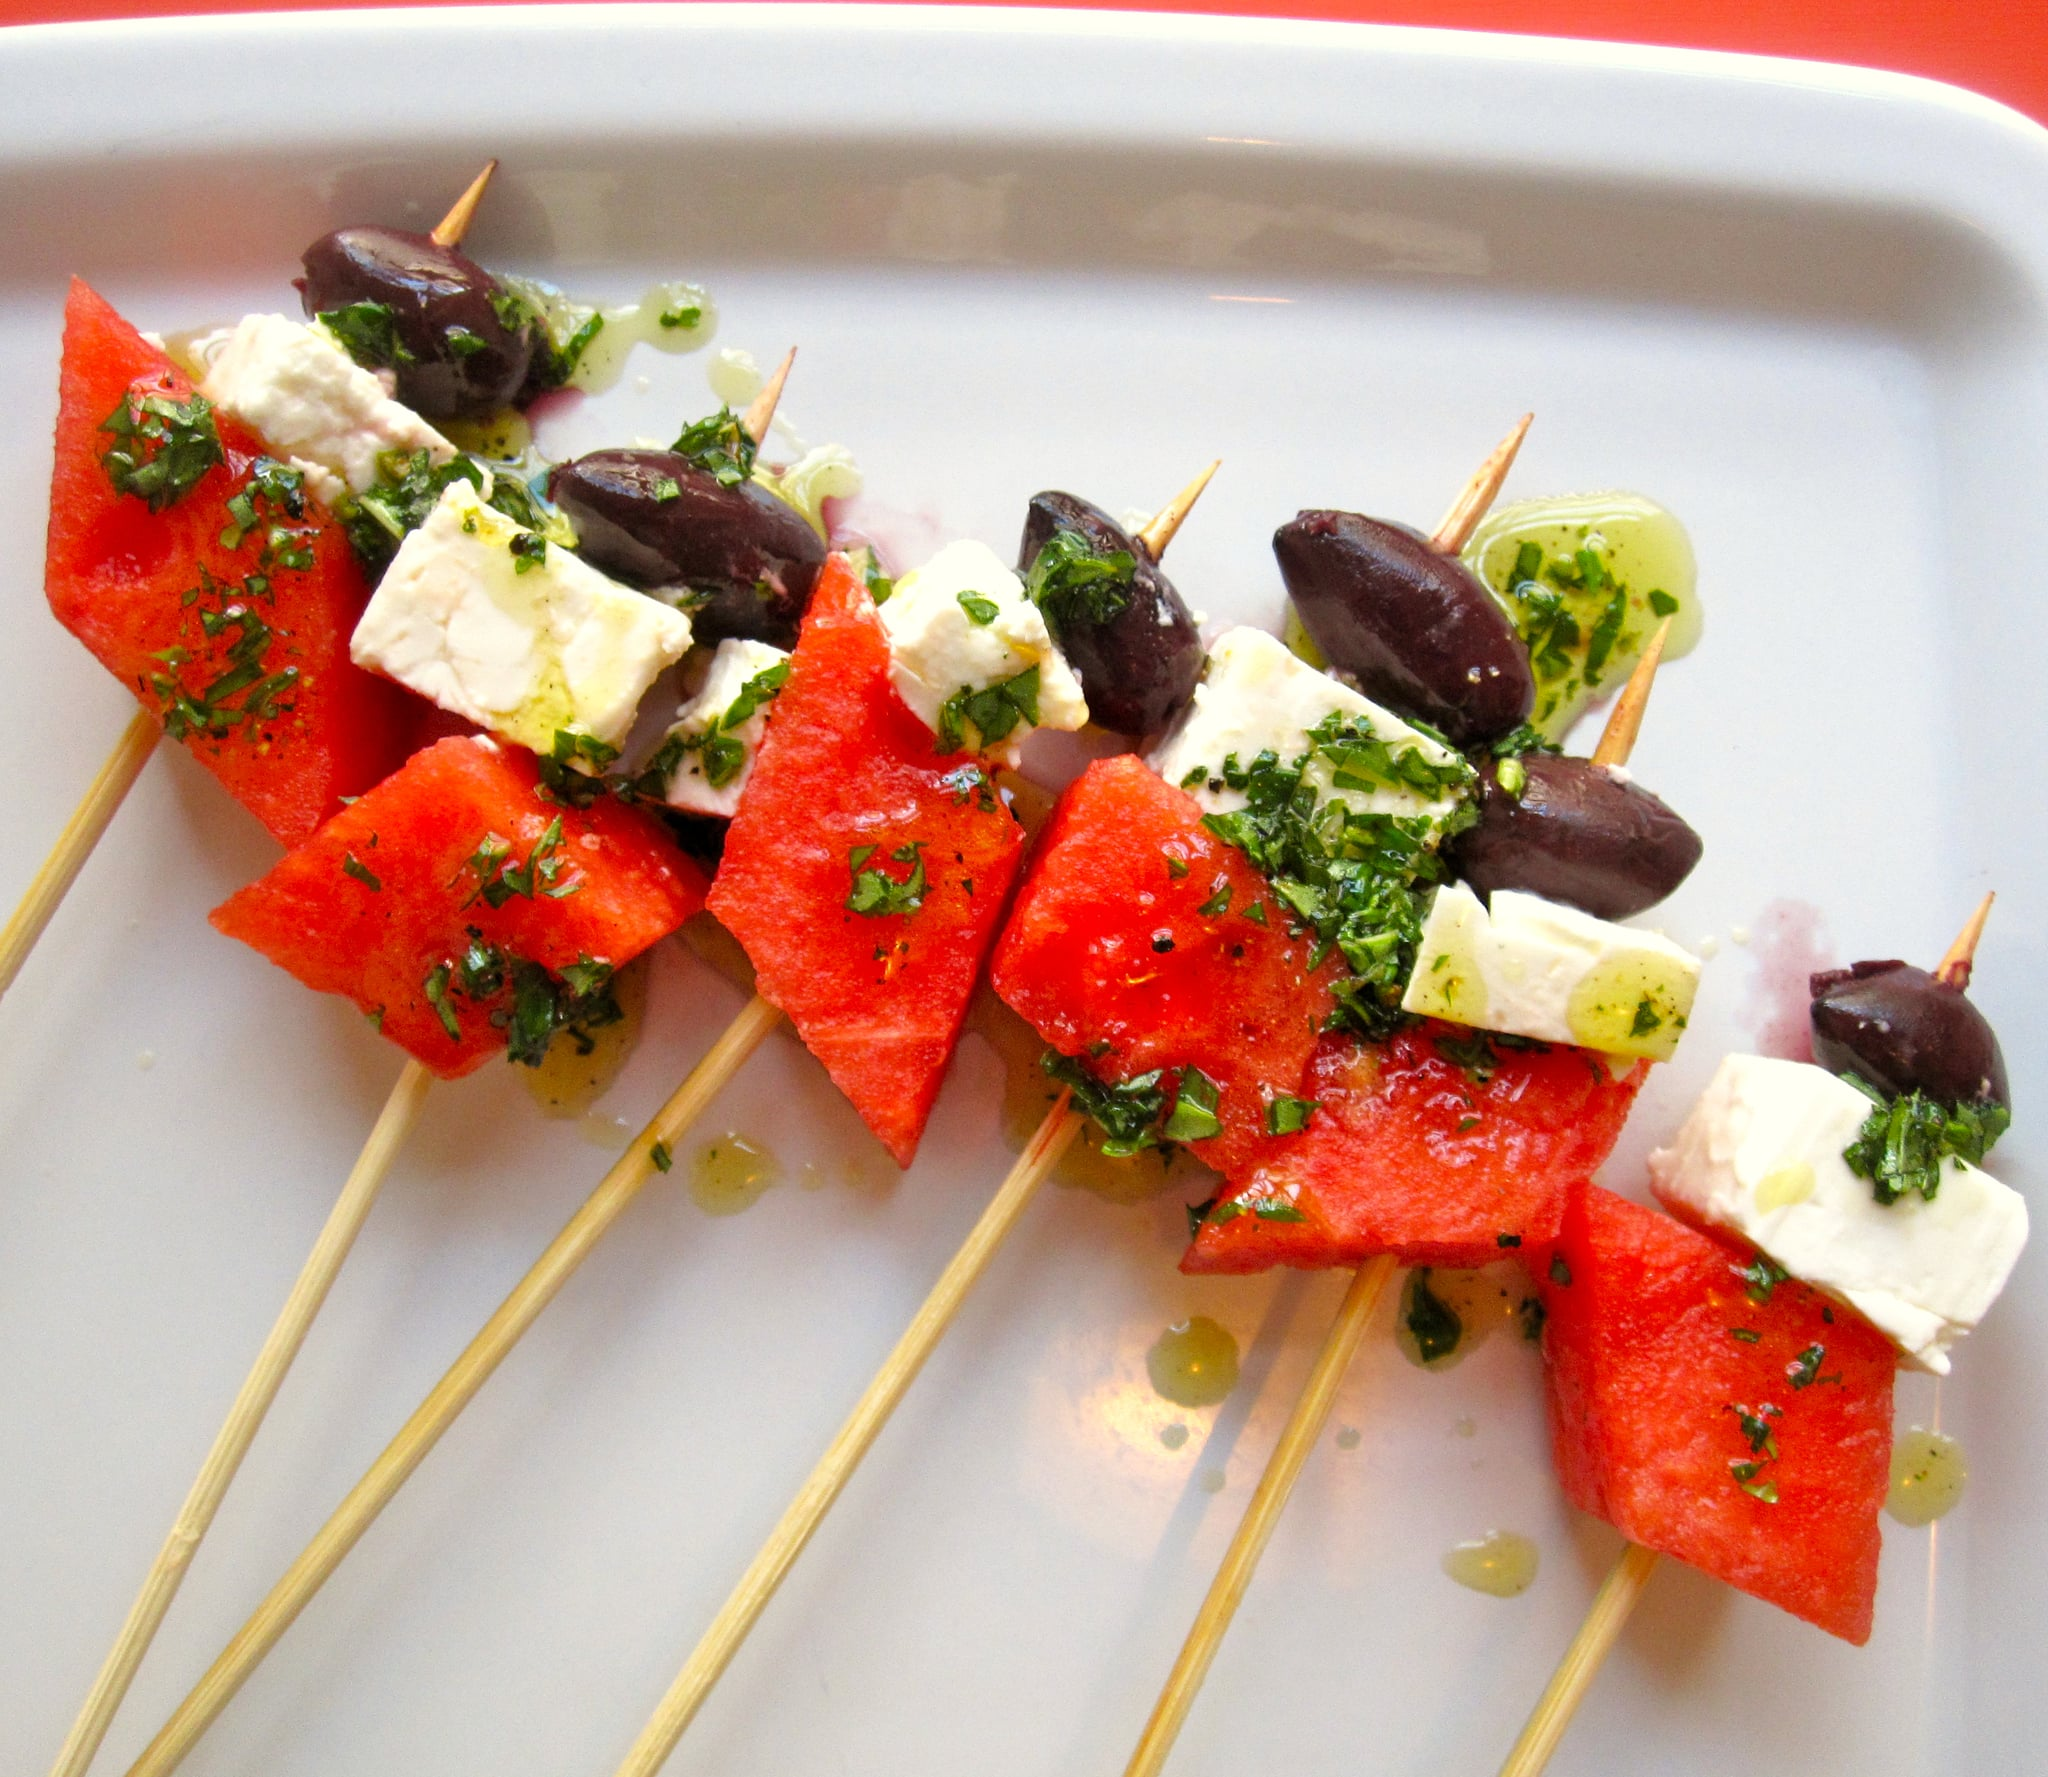 Popsugar Food: Watermelon And Feta Skewers Recipe